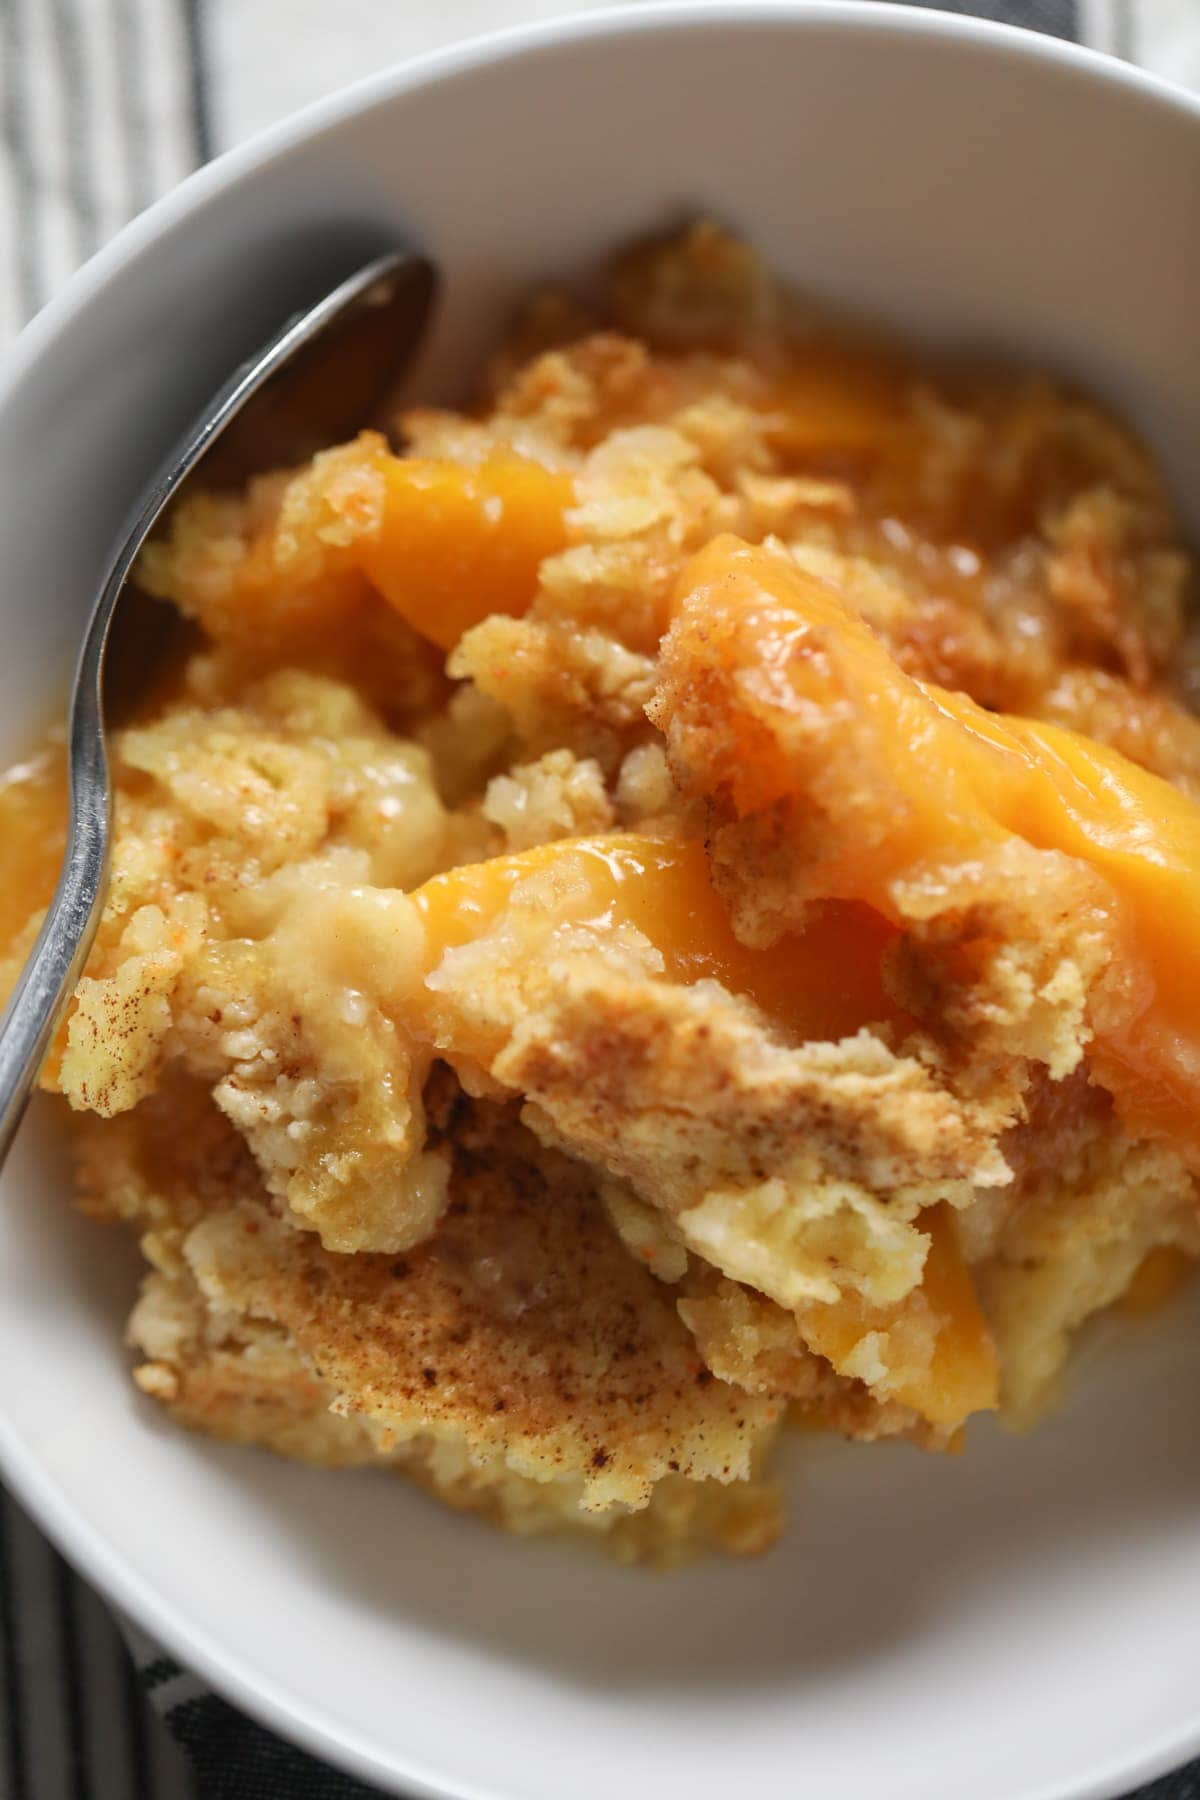 Peach Cobbler in white bowl with spoon